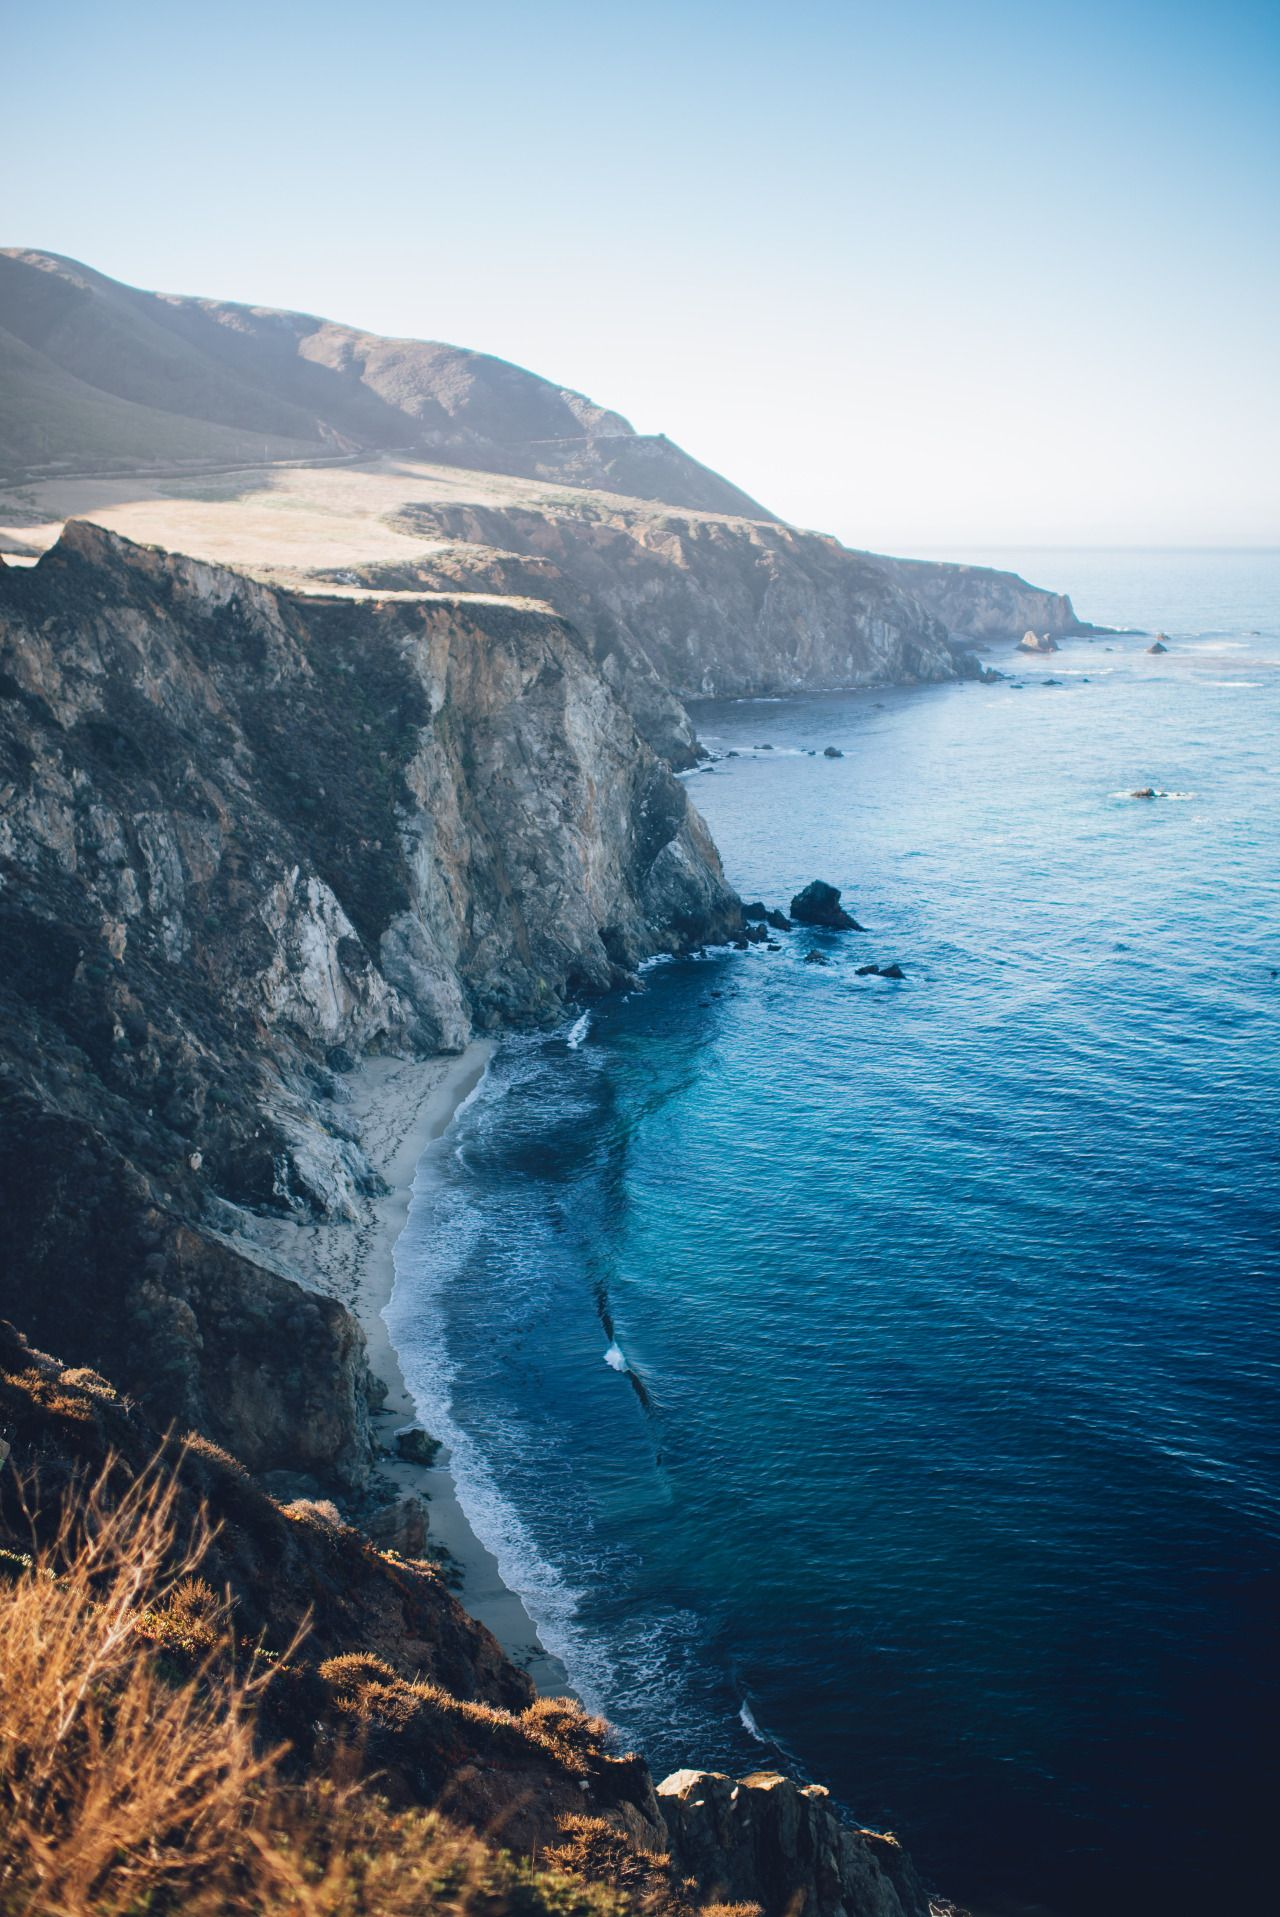 Bixby Creek Bridge, Monterey (US) | by Ian Schneider This photo as wallpaper on your smartphone? Get the app now!